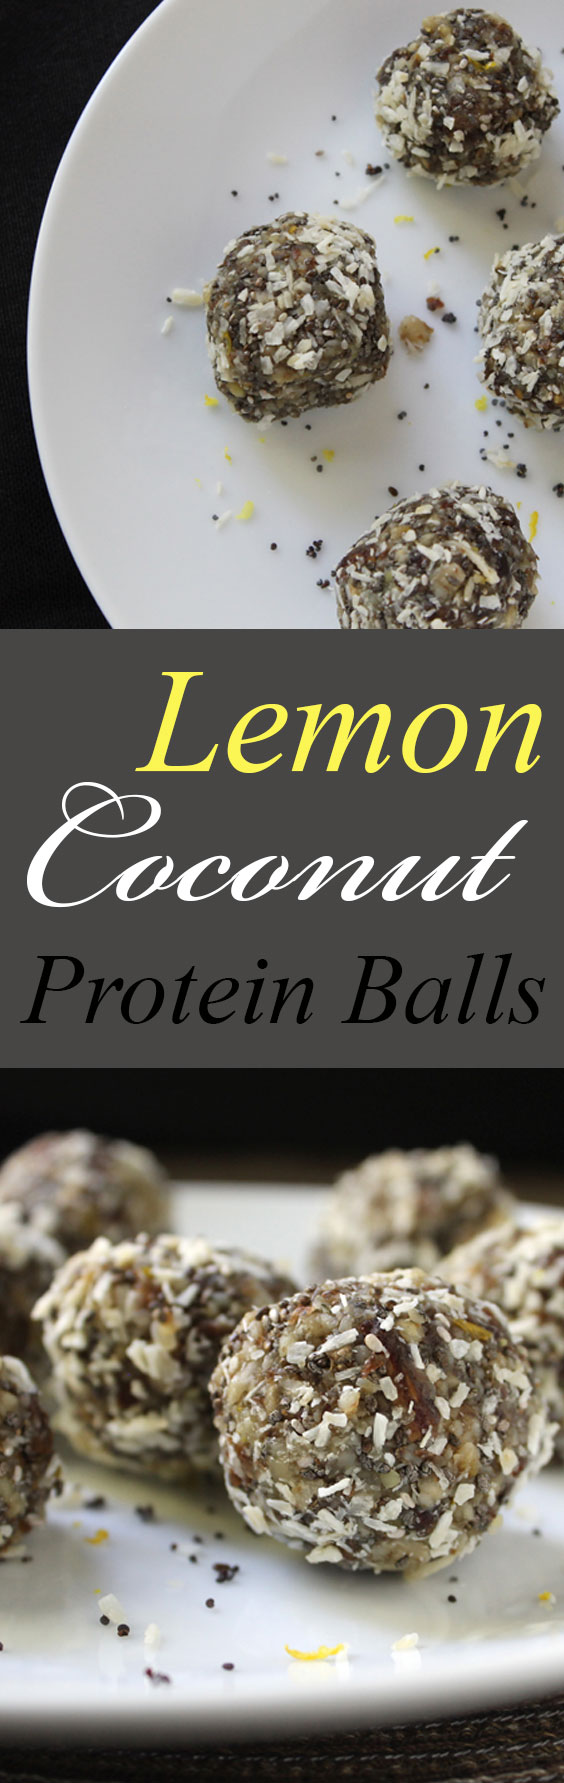 Fast and easy! Vegan Lemon Coconut Protein Balls. #vegan #gf #backpacking